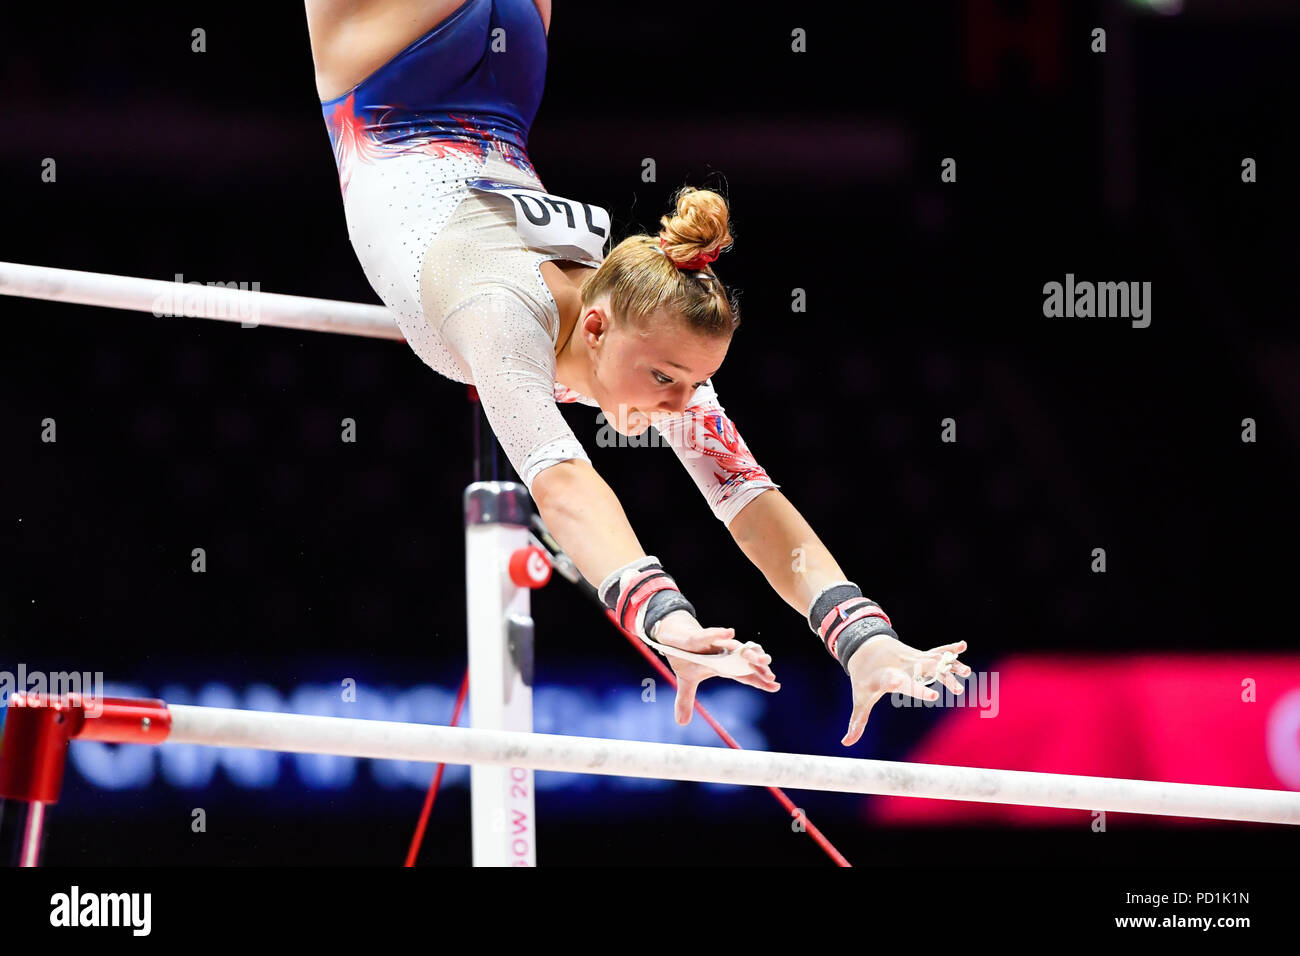 CHARPY Lorette (FRA) competes on the Vault in Women's Artistic Gymnastics Apparatus  Finals during the European Championships Glasgow 2018 at The SSE Hydro on Sunday, 05 August 2018. GLASGOW SCOTLAND . Credit: Taka G Wu - Stock Image